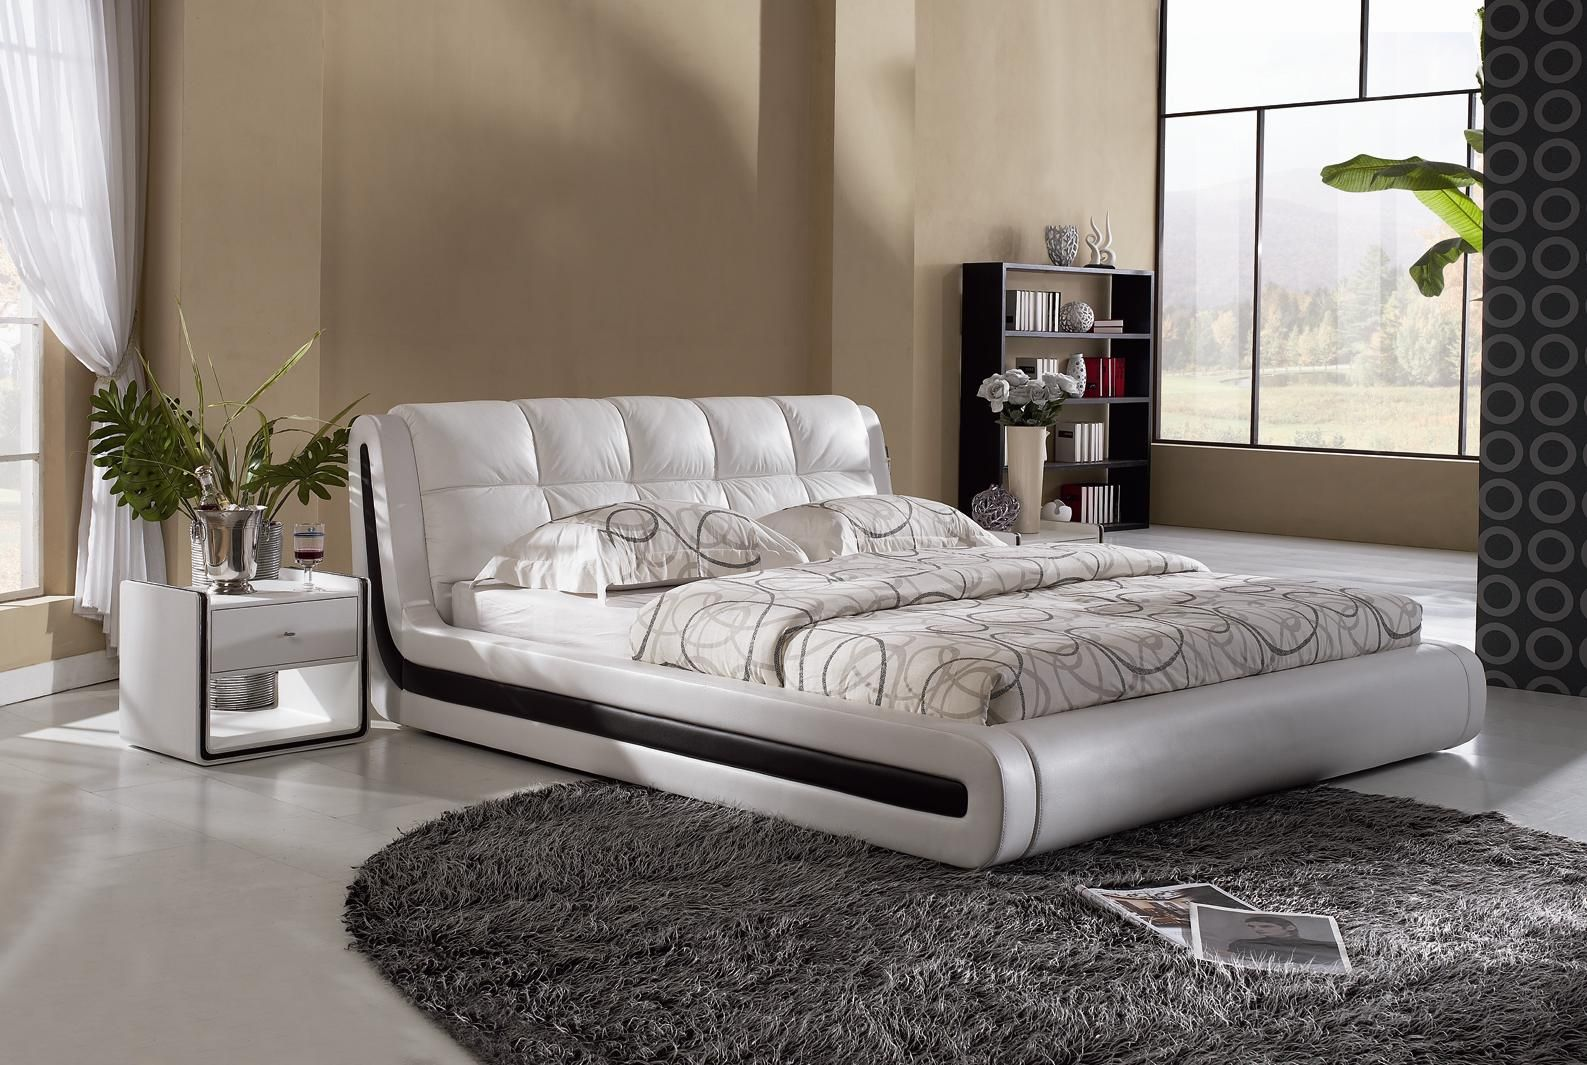 Modern bed designs home interior designer adult bedroom for Bed designs 2016